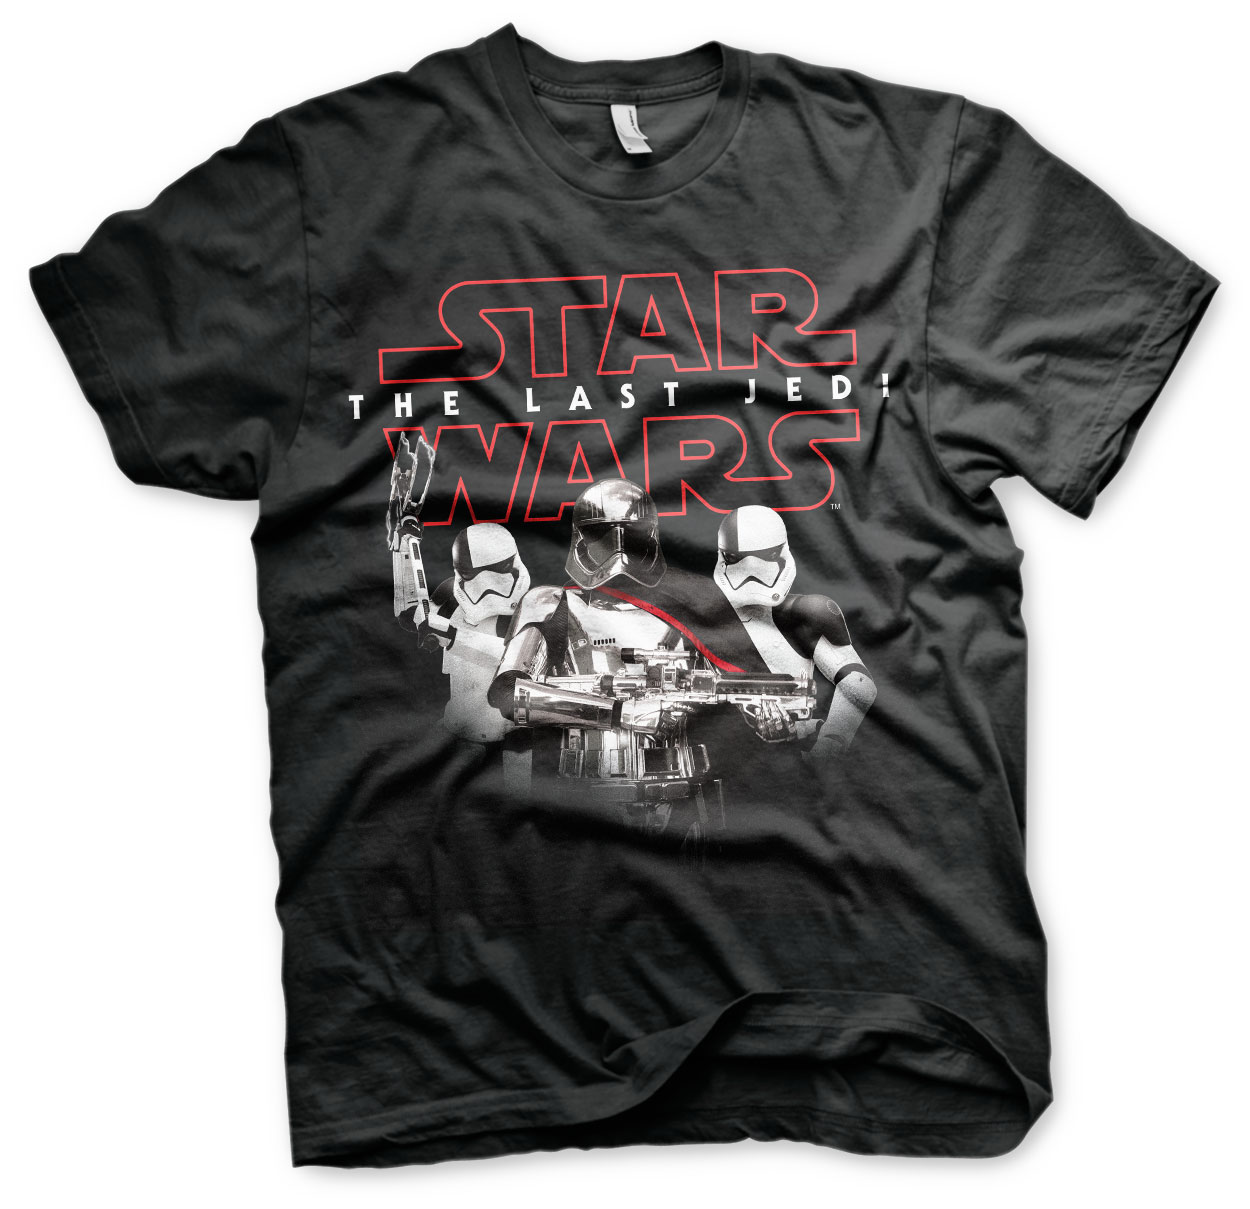 The Last Jedi Troopers T-Shirt